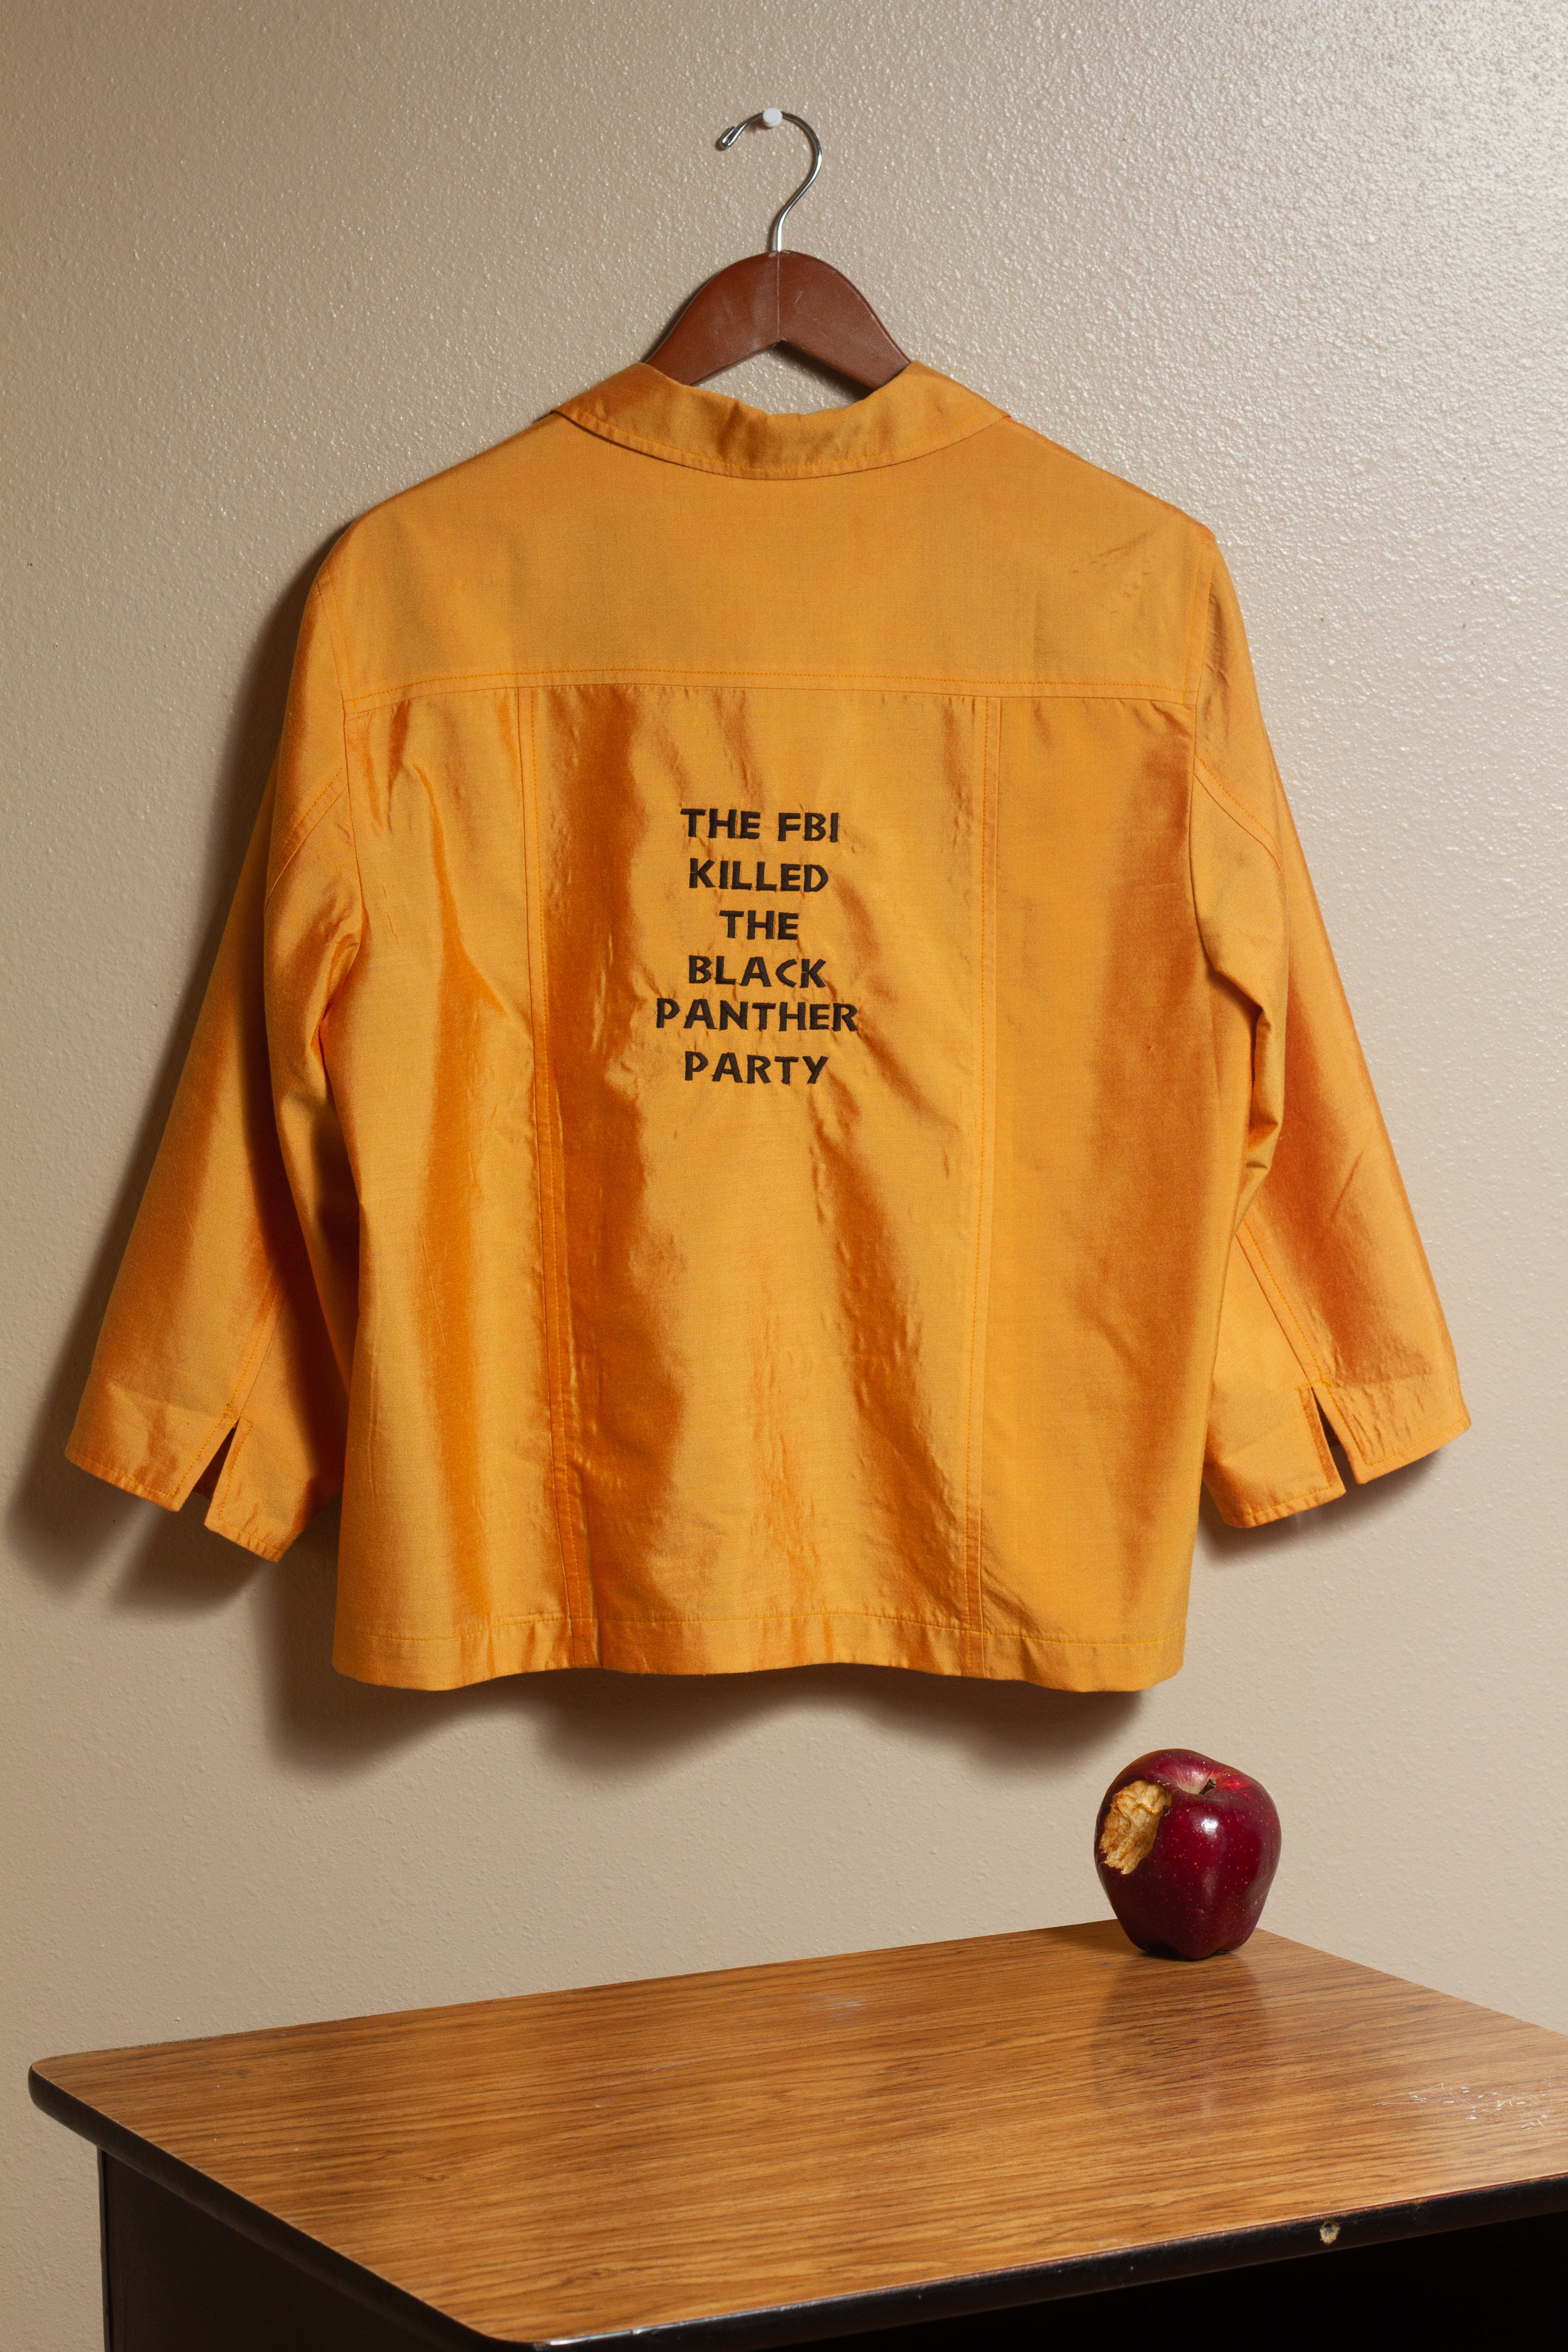 The FBI Killed the Black Panther Party - Jacket